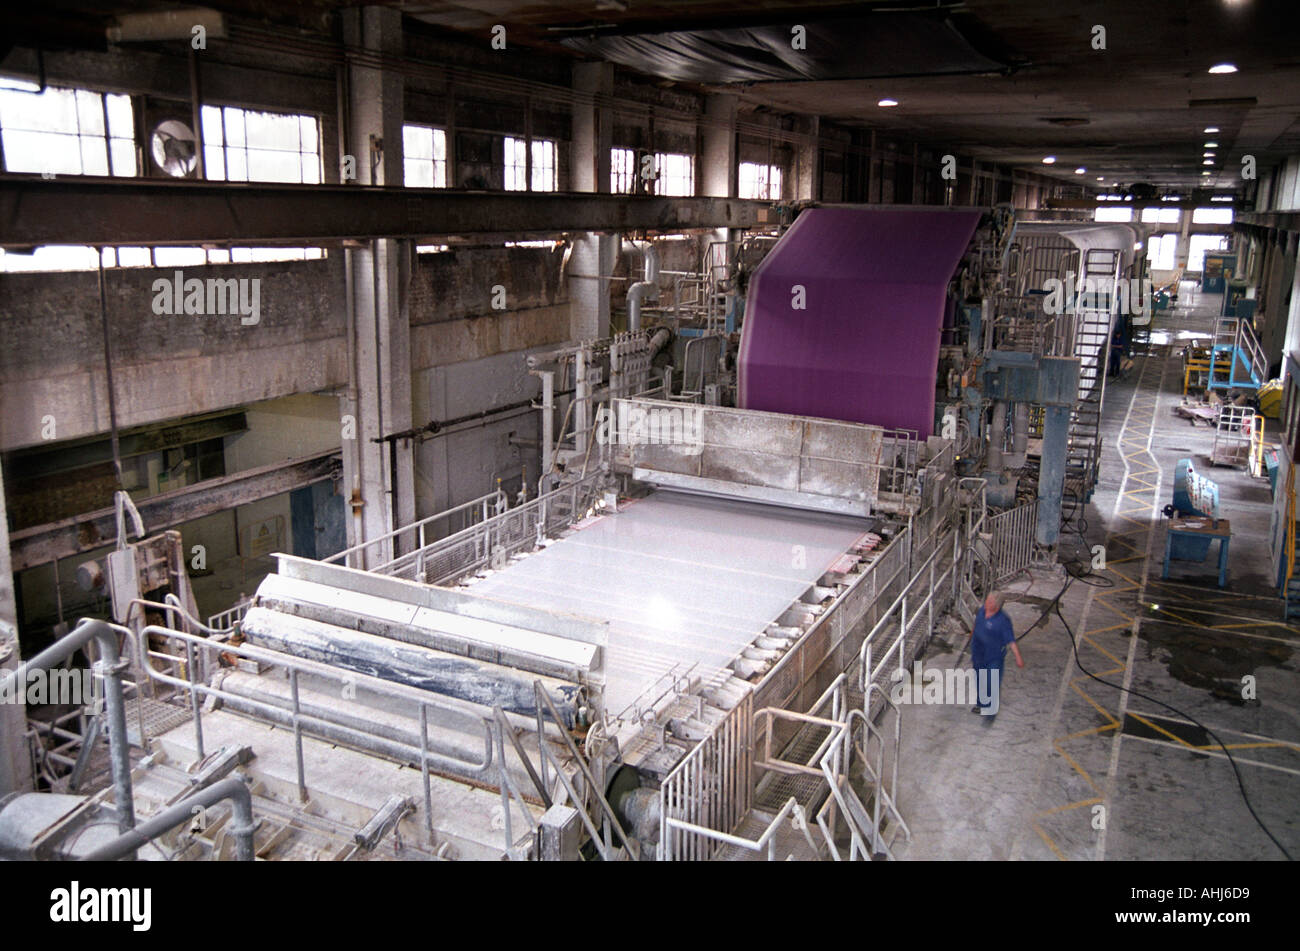 Paper manufacture at Smurfit paper factory Snodland, England